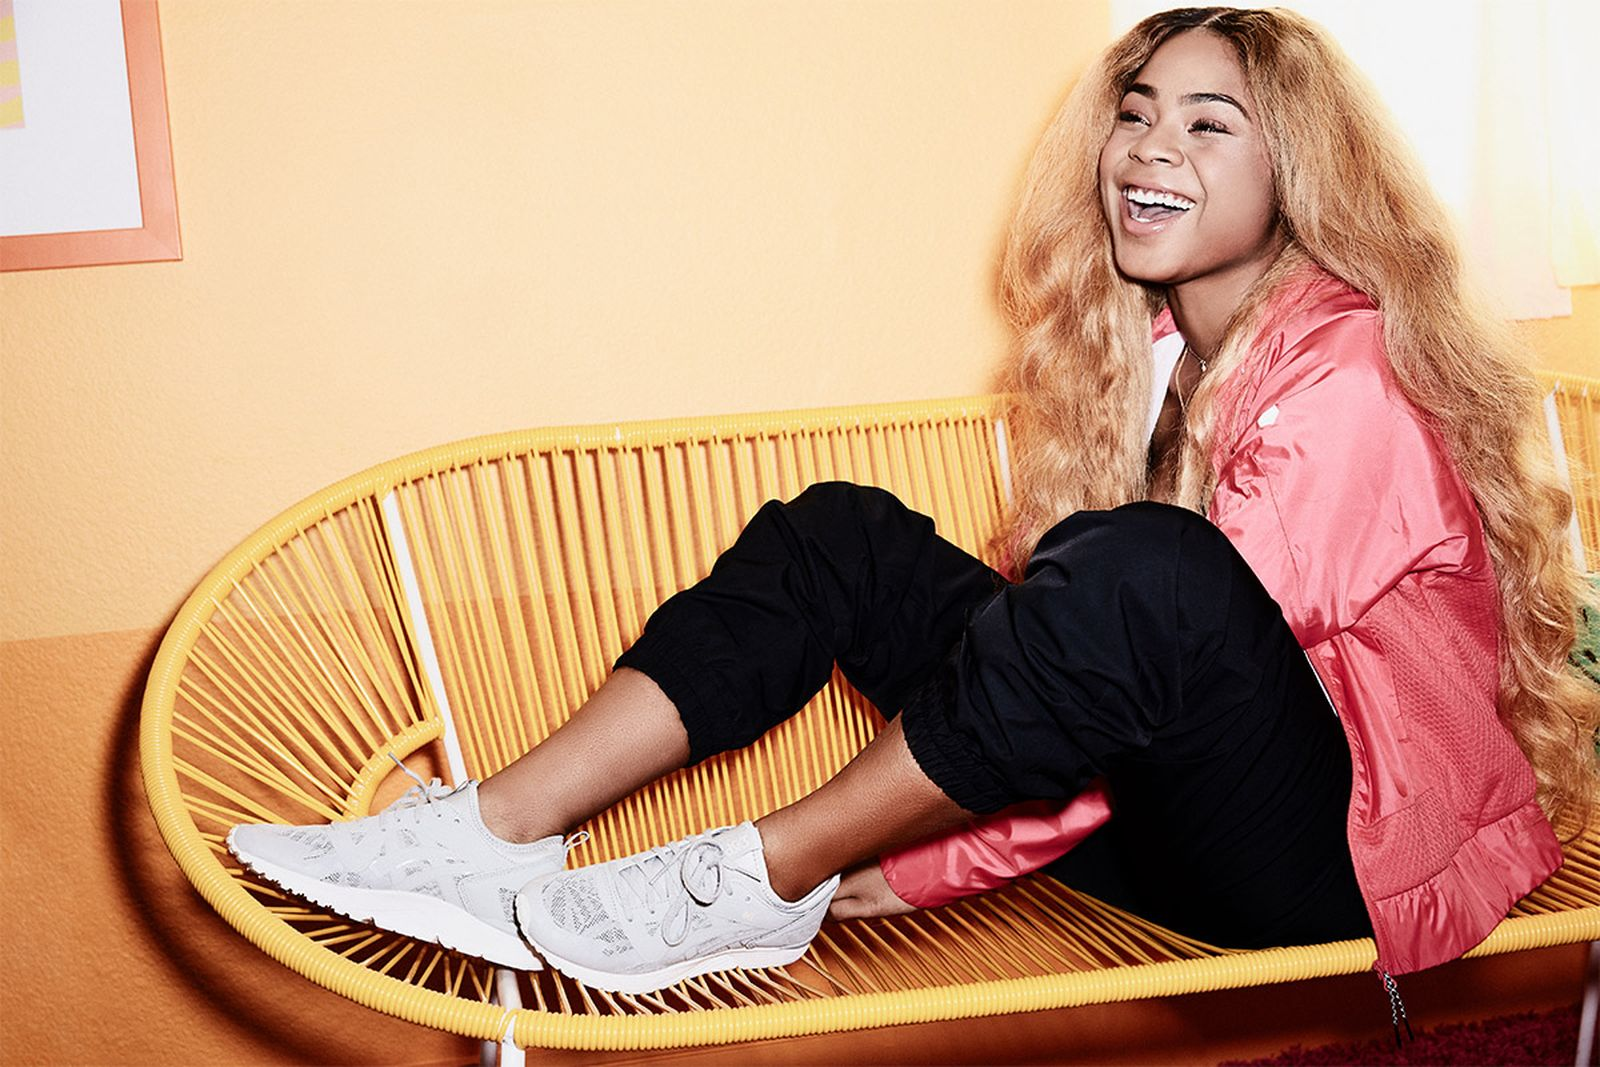 tayla-parx-asics-i-move-me-lookbook-01